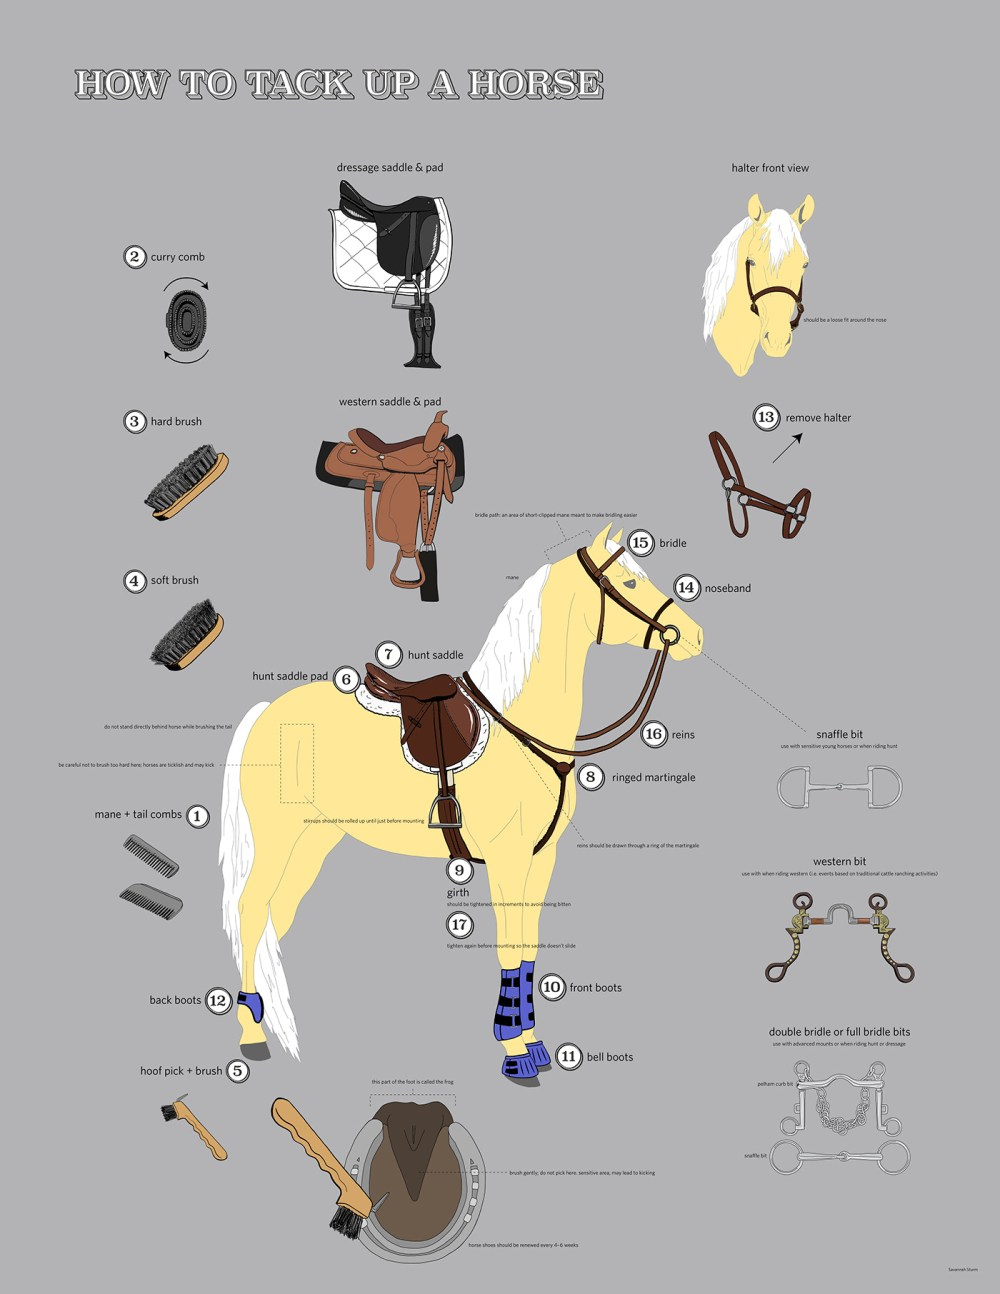 medium resolution of  or prepare a horse and equipment for riding i chose to put an emphasis on illustration for this project so each item on the diagram is a hand drawn